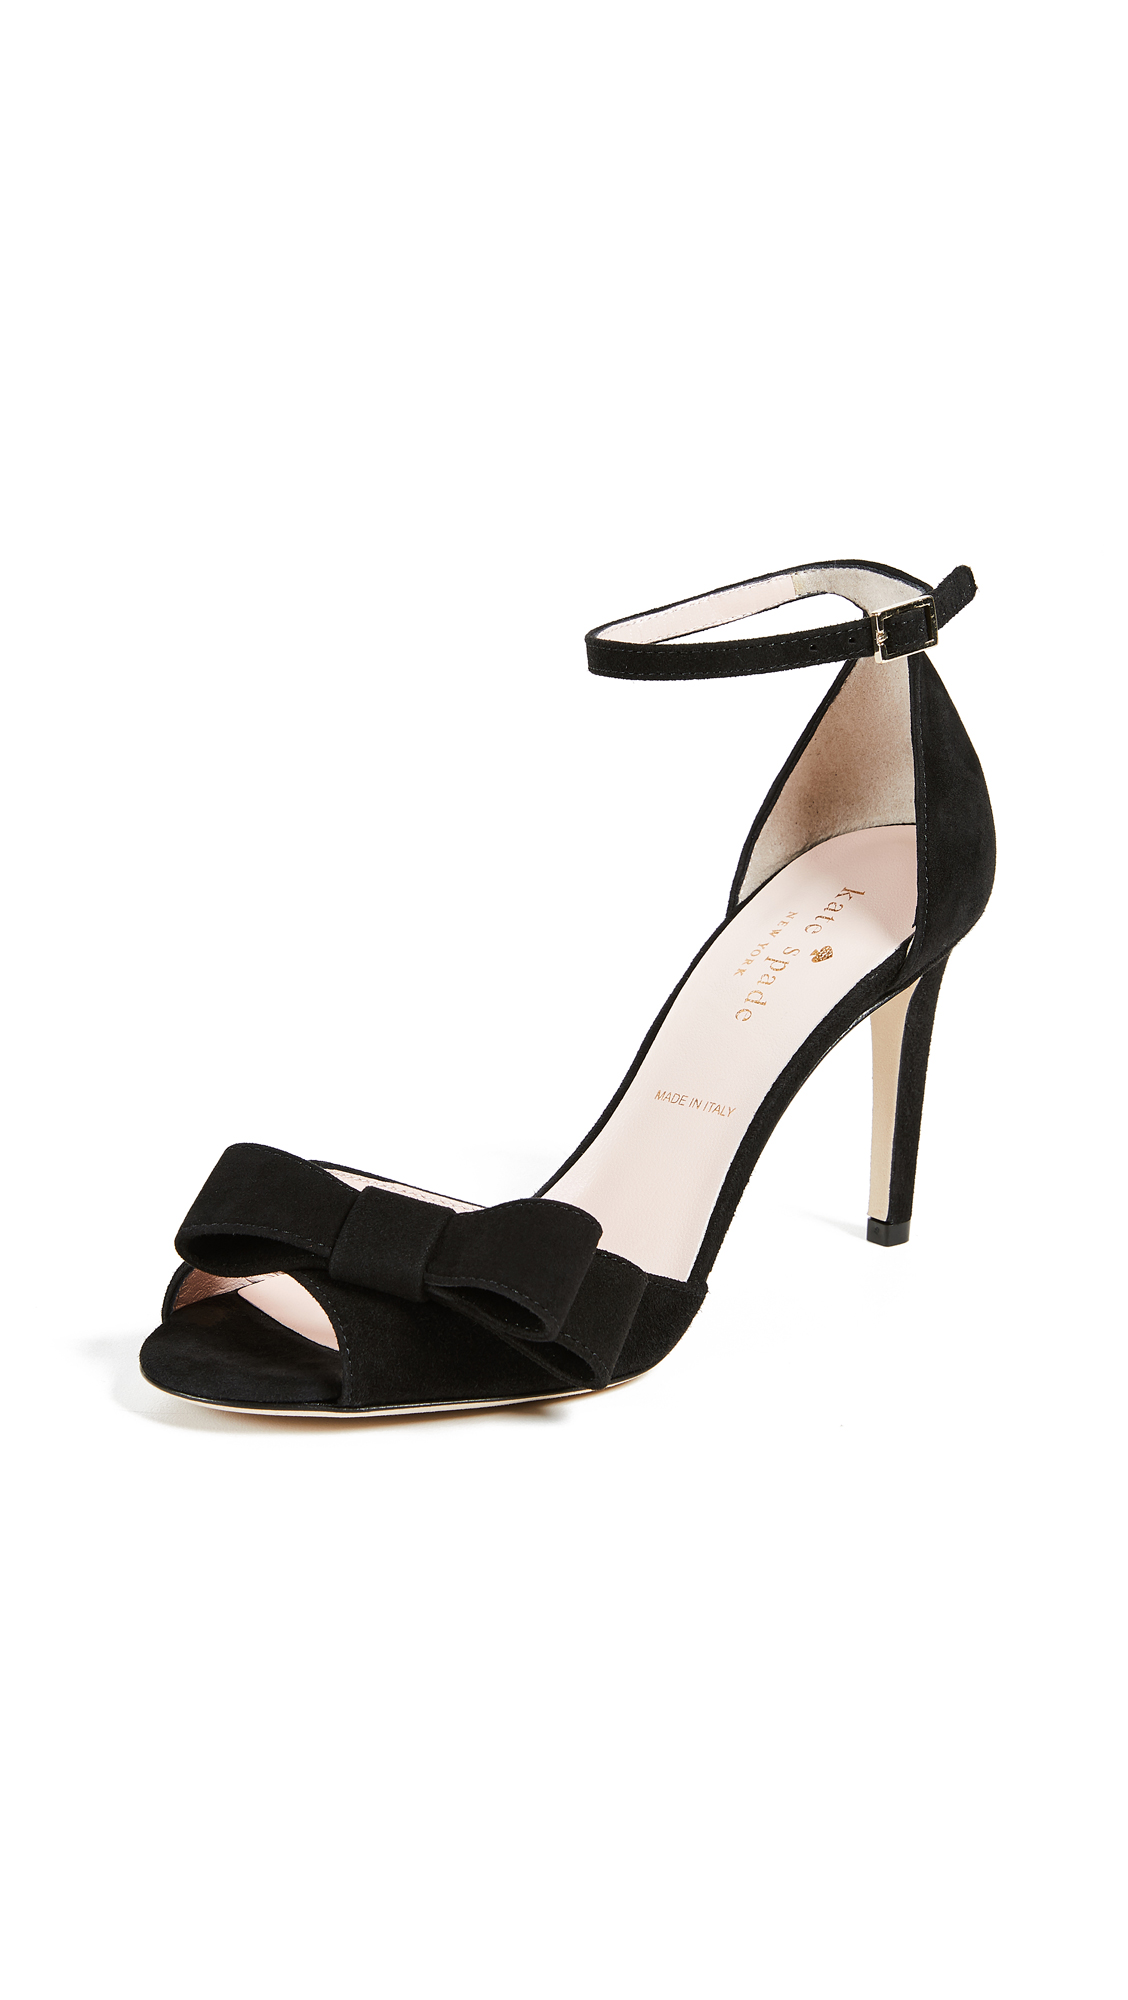 Kate Spade New York Ismay Ankle Strap Sandals - Black